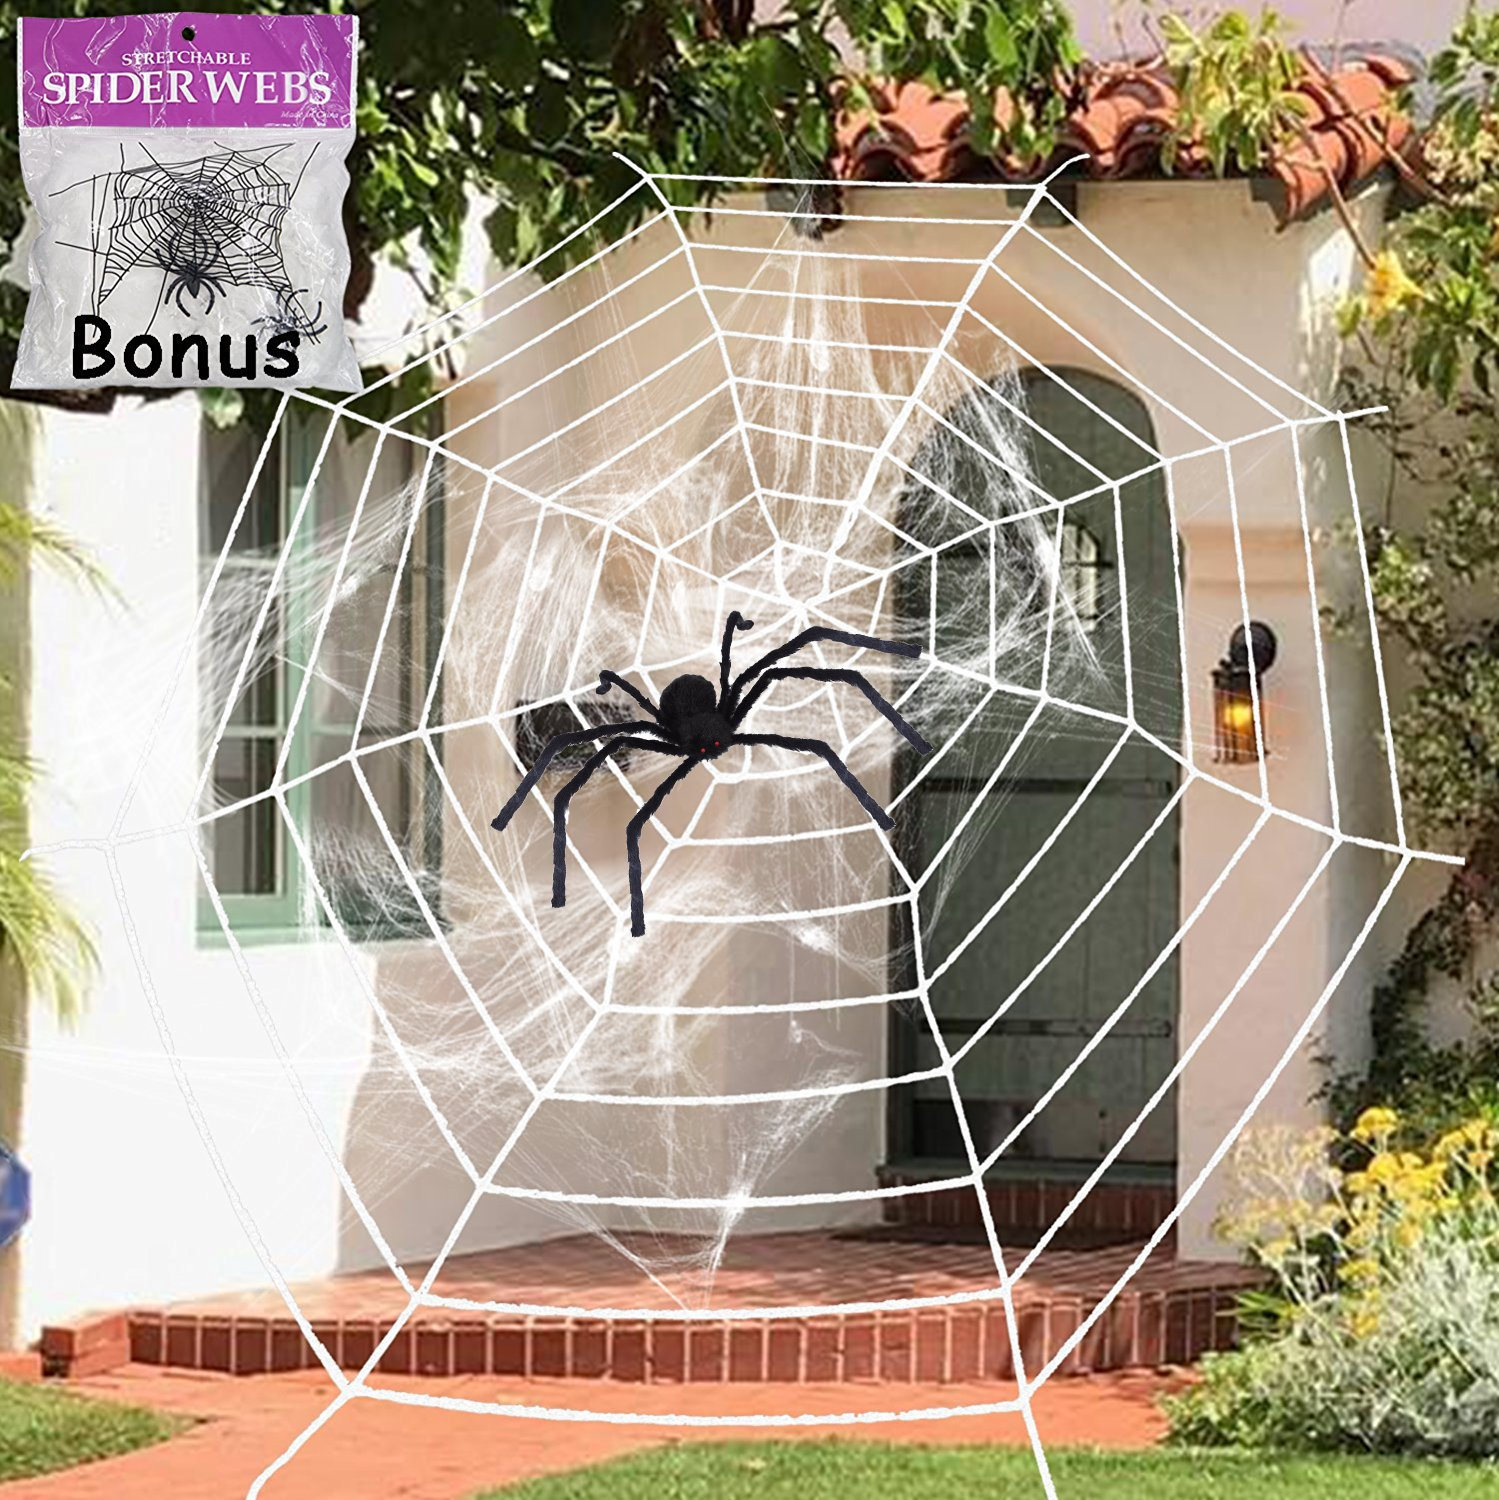 11.8 Feet Black Plush Spider Web Stretch Cobweb Set with Realistic Looking Hairy Spider, Best for Halloween Outdoor Yard Haunted House Party Decoration, Decor Supplies Props Party Favor (White Web)